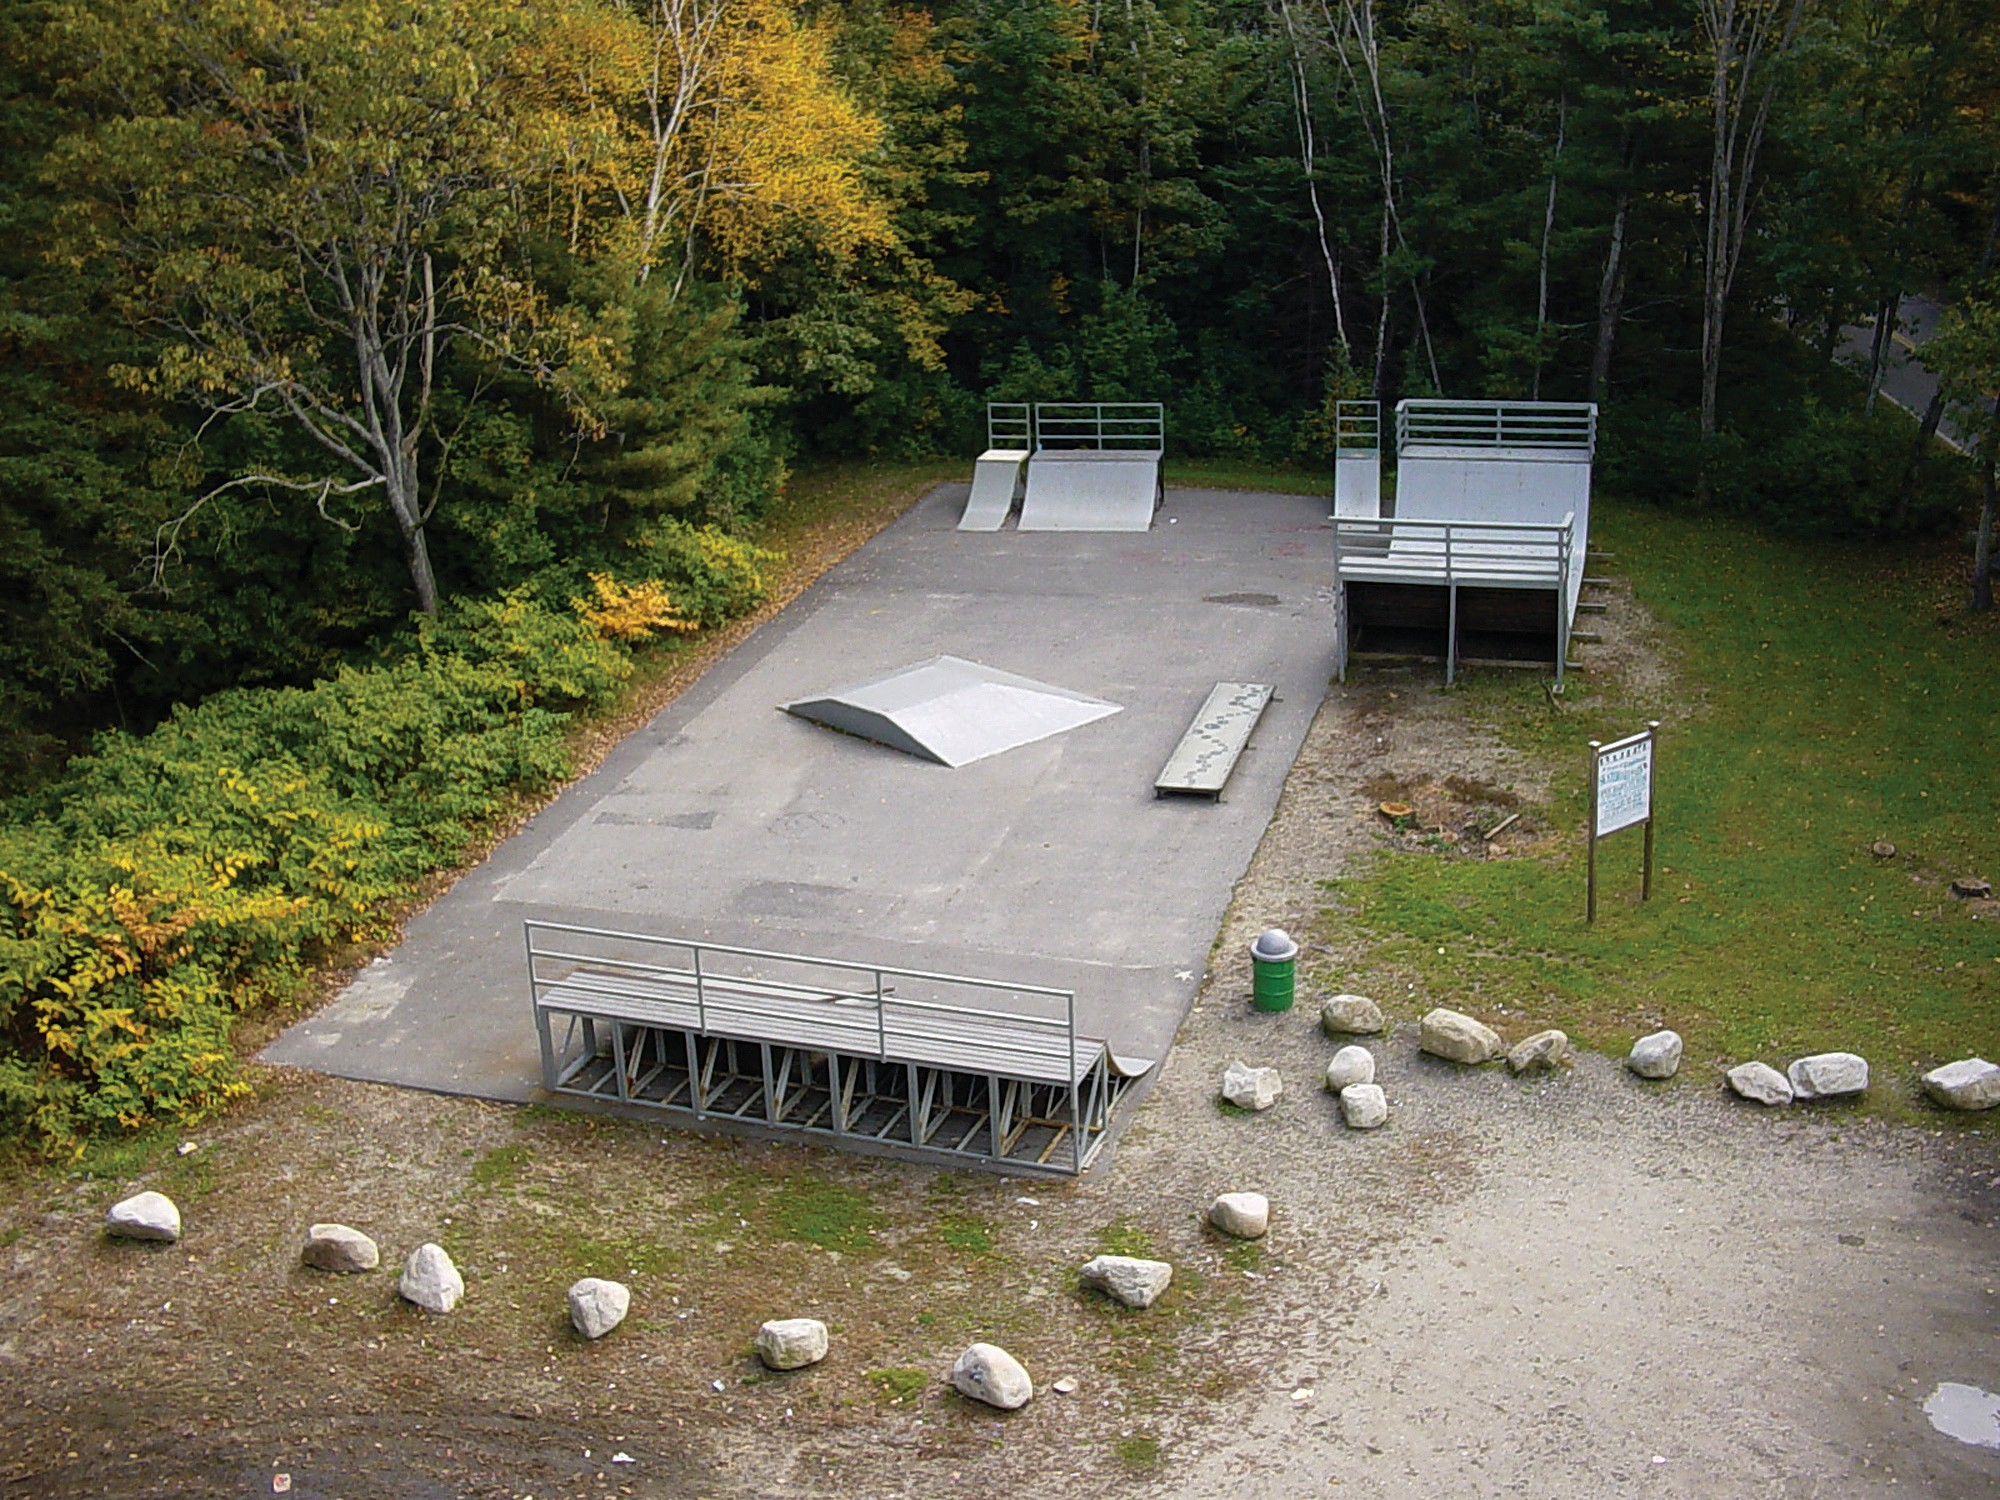 The skate park in Kennebunk, on Factory Pasture Lane, is pictured in this undated photo. Kennebunk Selectmen received $100,000 to improve the aging wooden ramps. However, voters turned down a proposal to build a new park in Parson's Field in June.